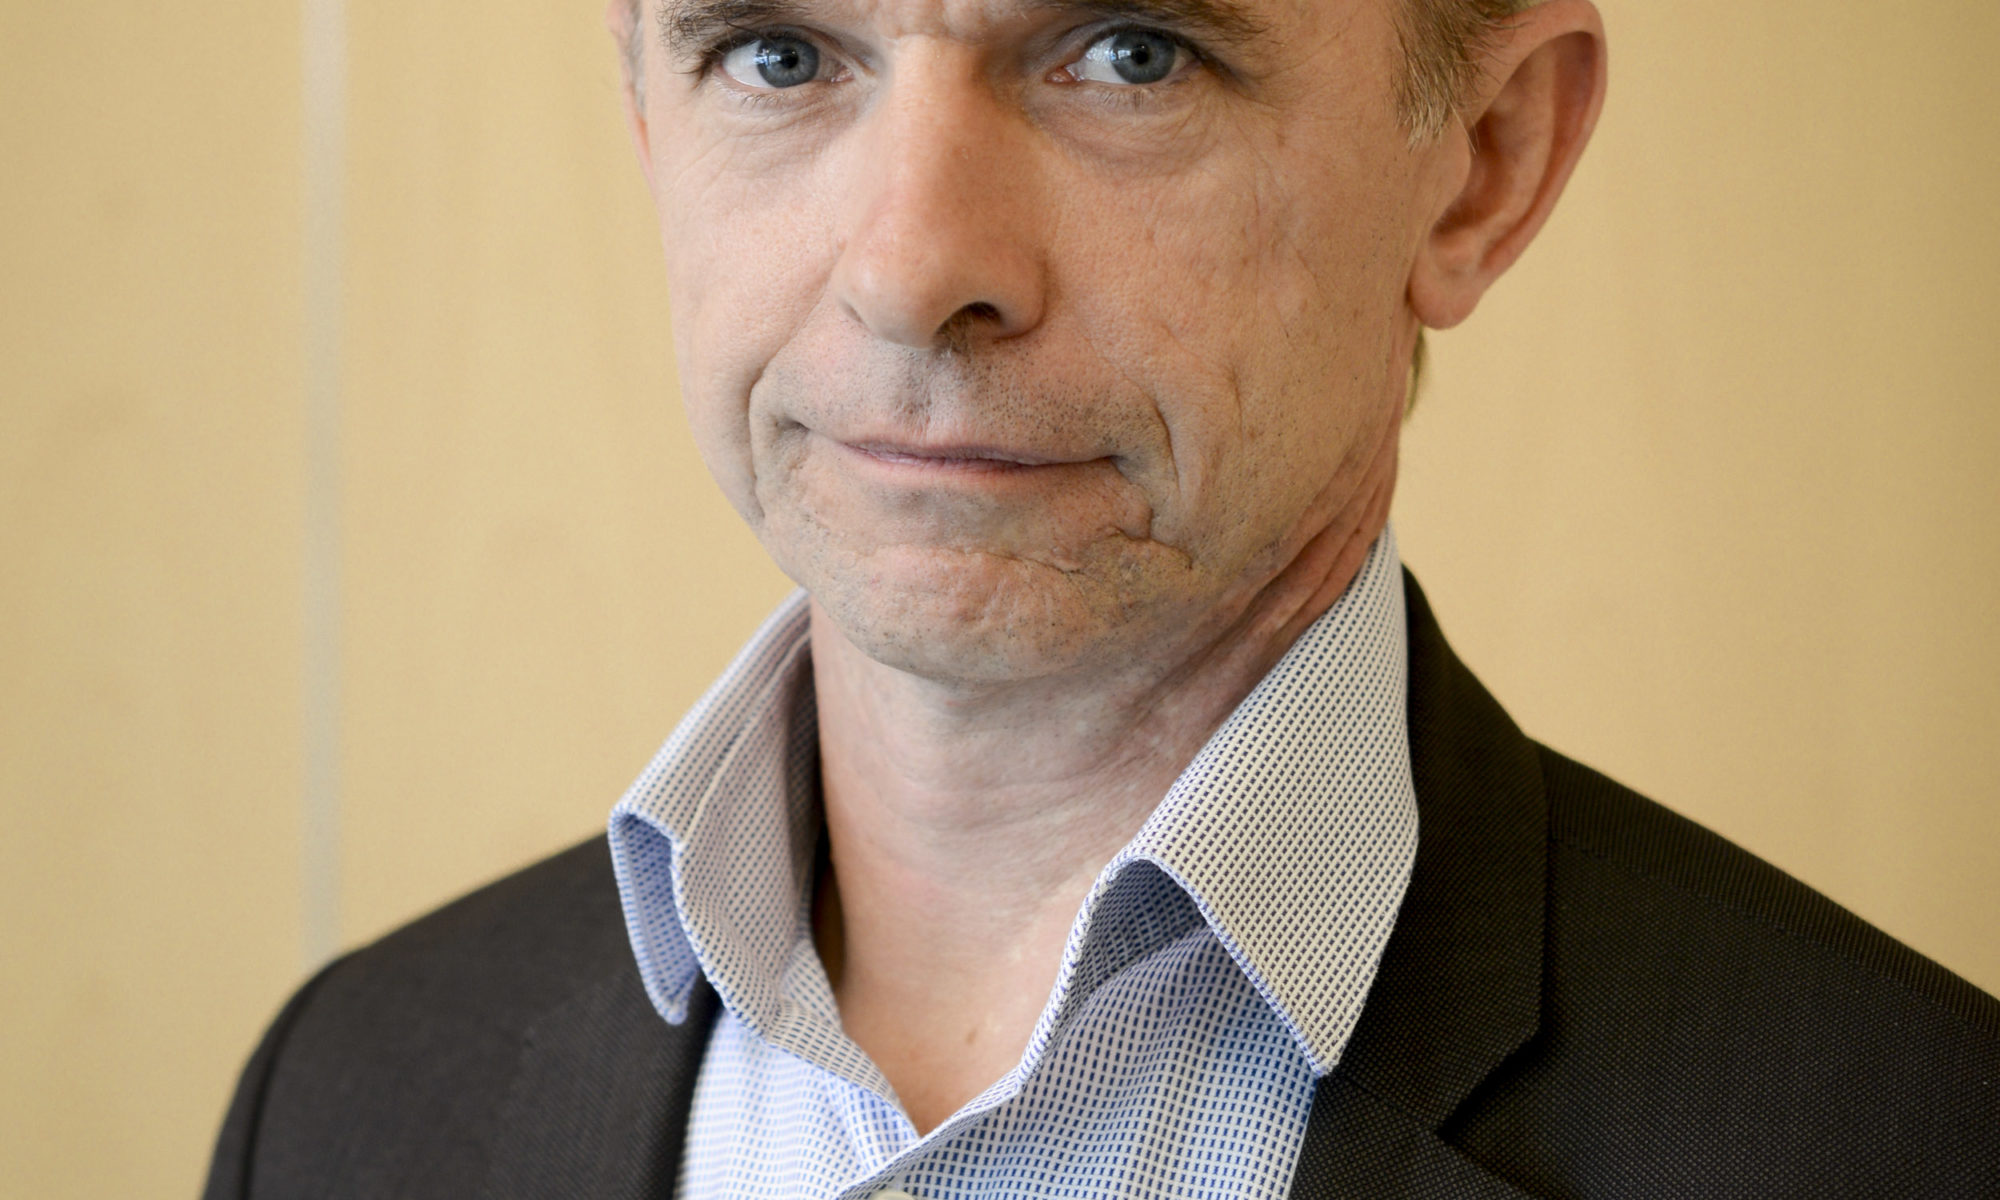 GSG France contacts, Jean Michel Lecuyer profile headshot